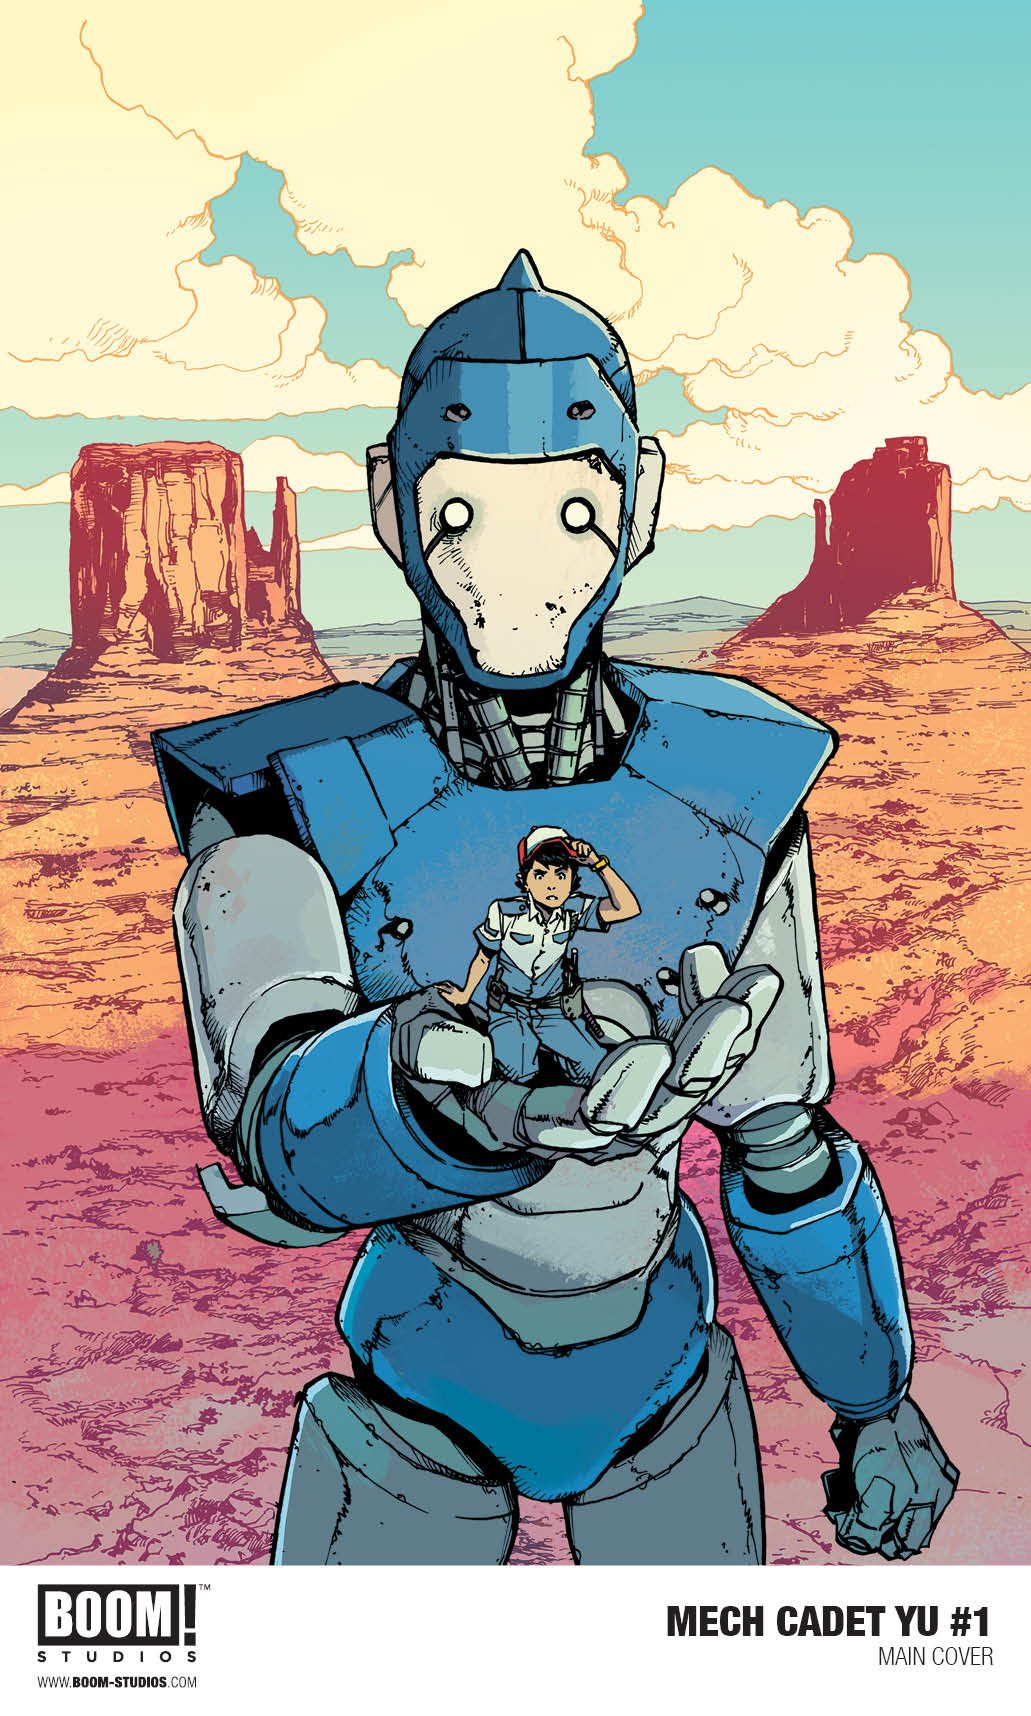 BOOM! Studios Announces 'Mech Cadet Yu' from Greg Pak and Takeshi Miyazawa